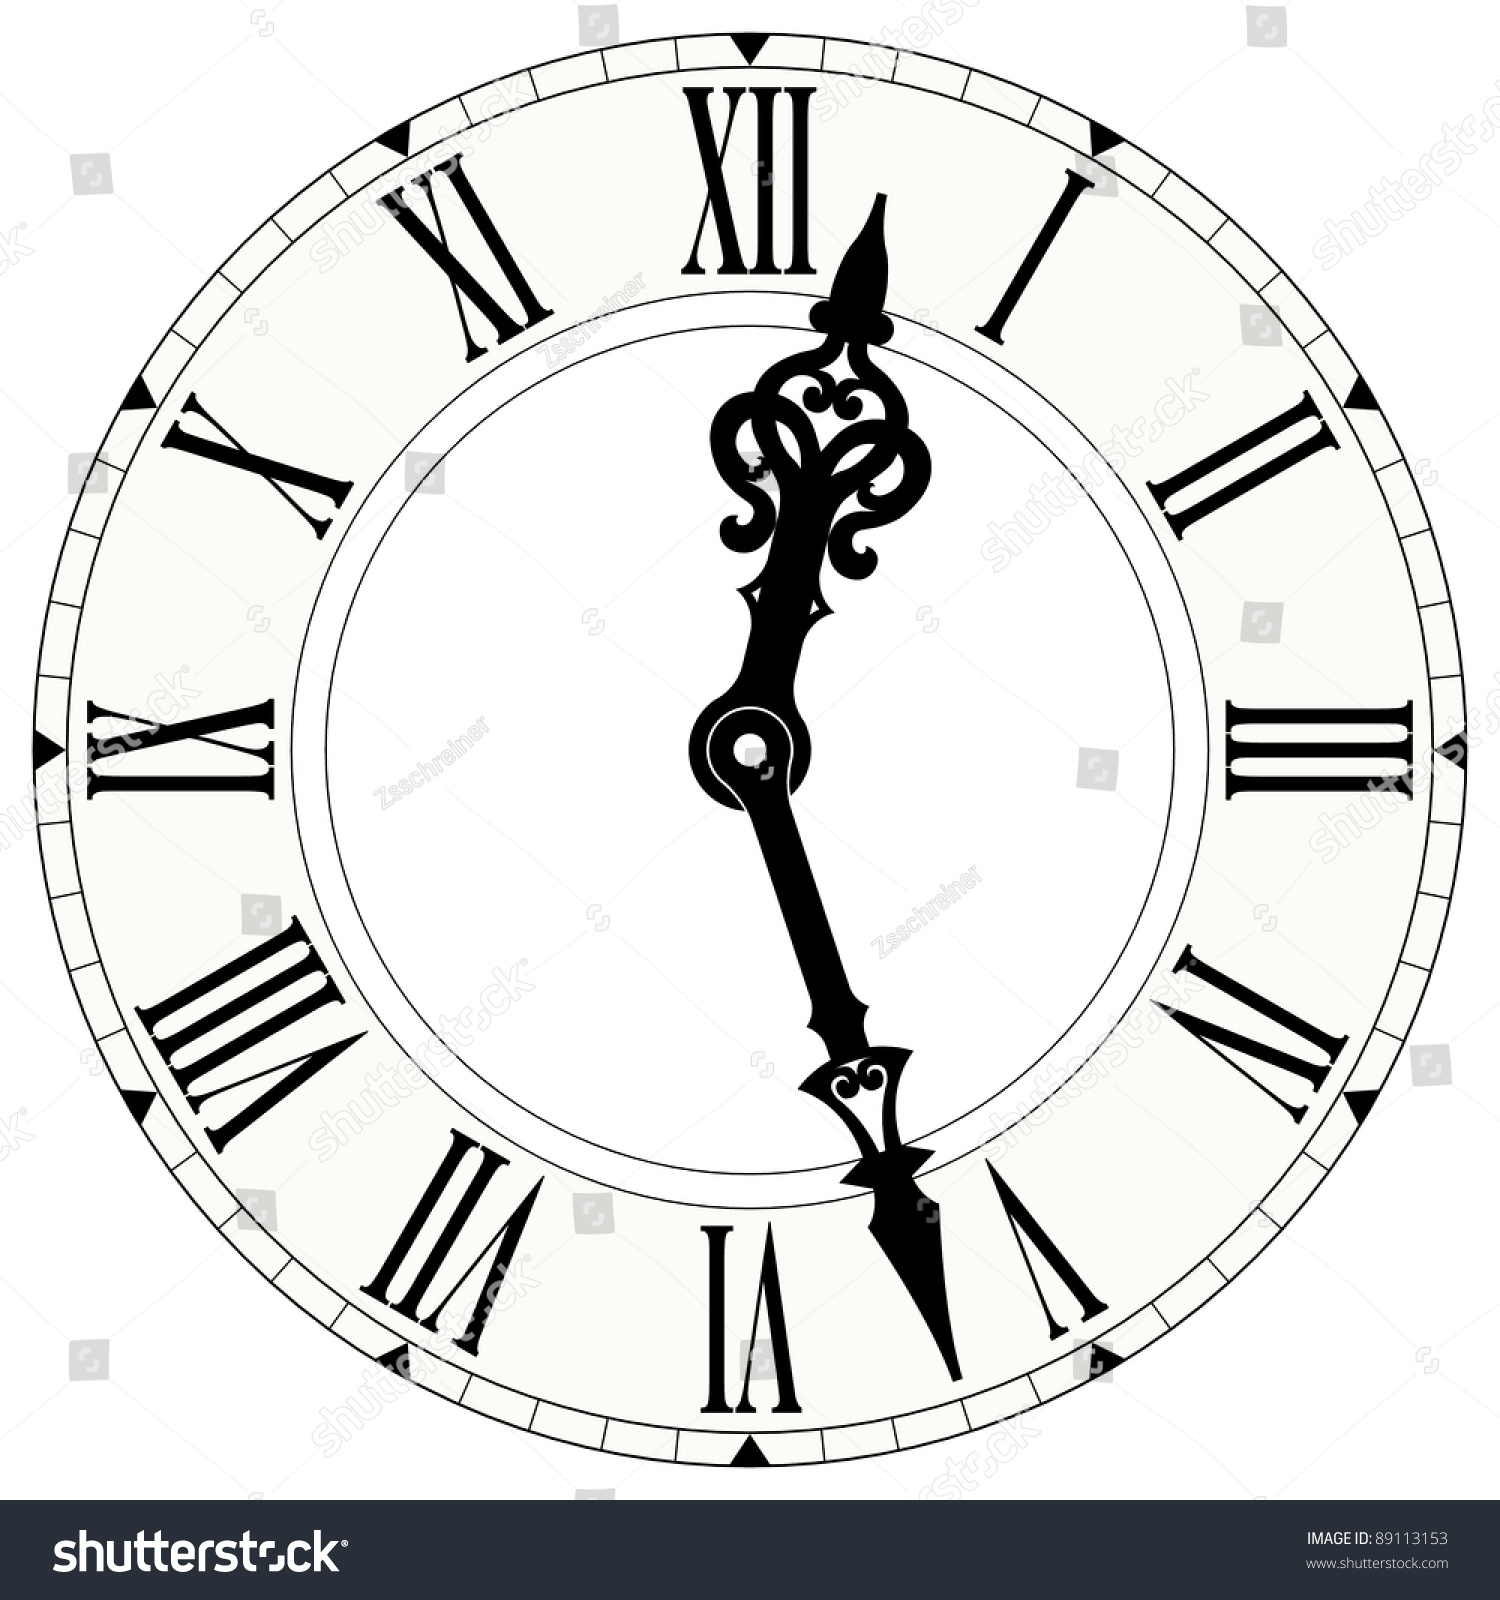 Illustration Roman Numeral Clock Stock Illustration